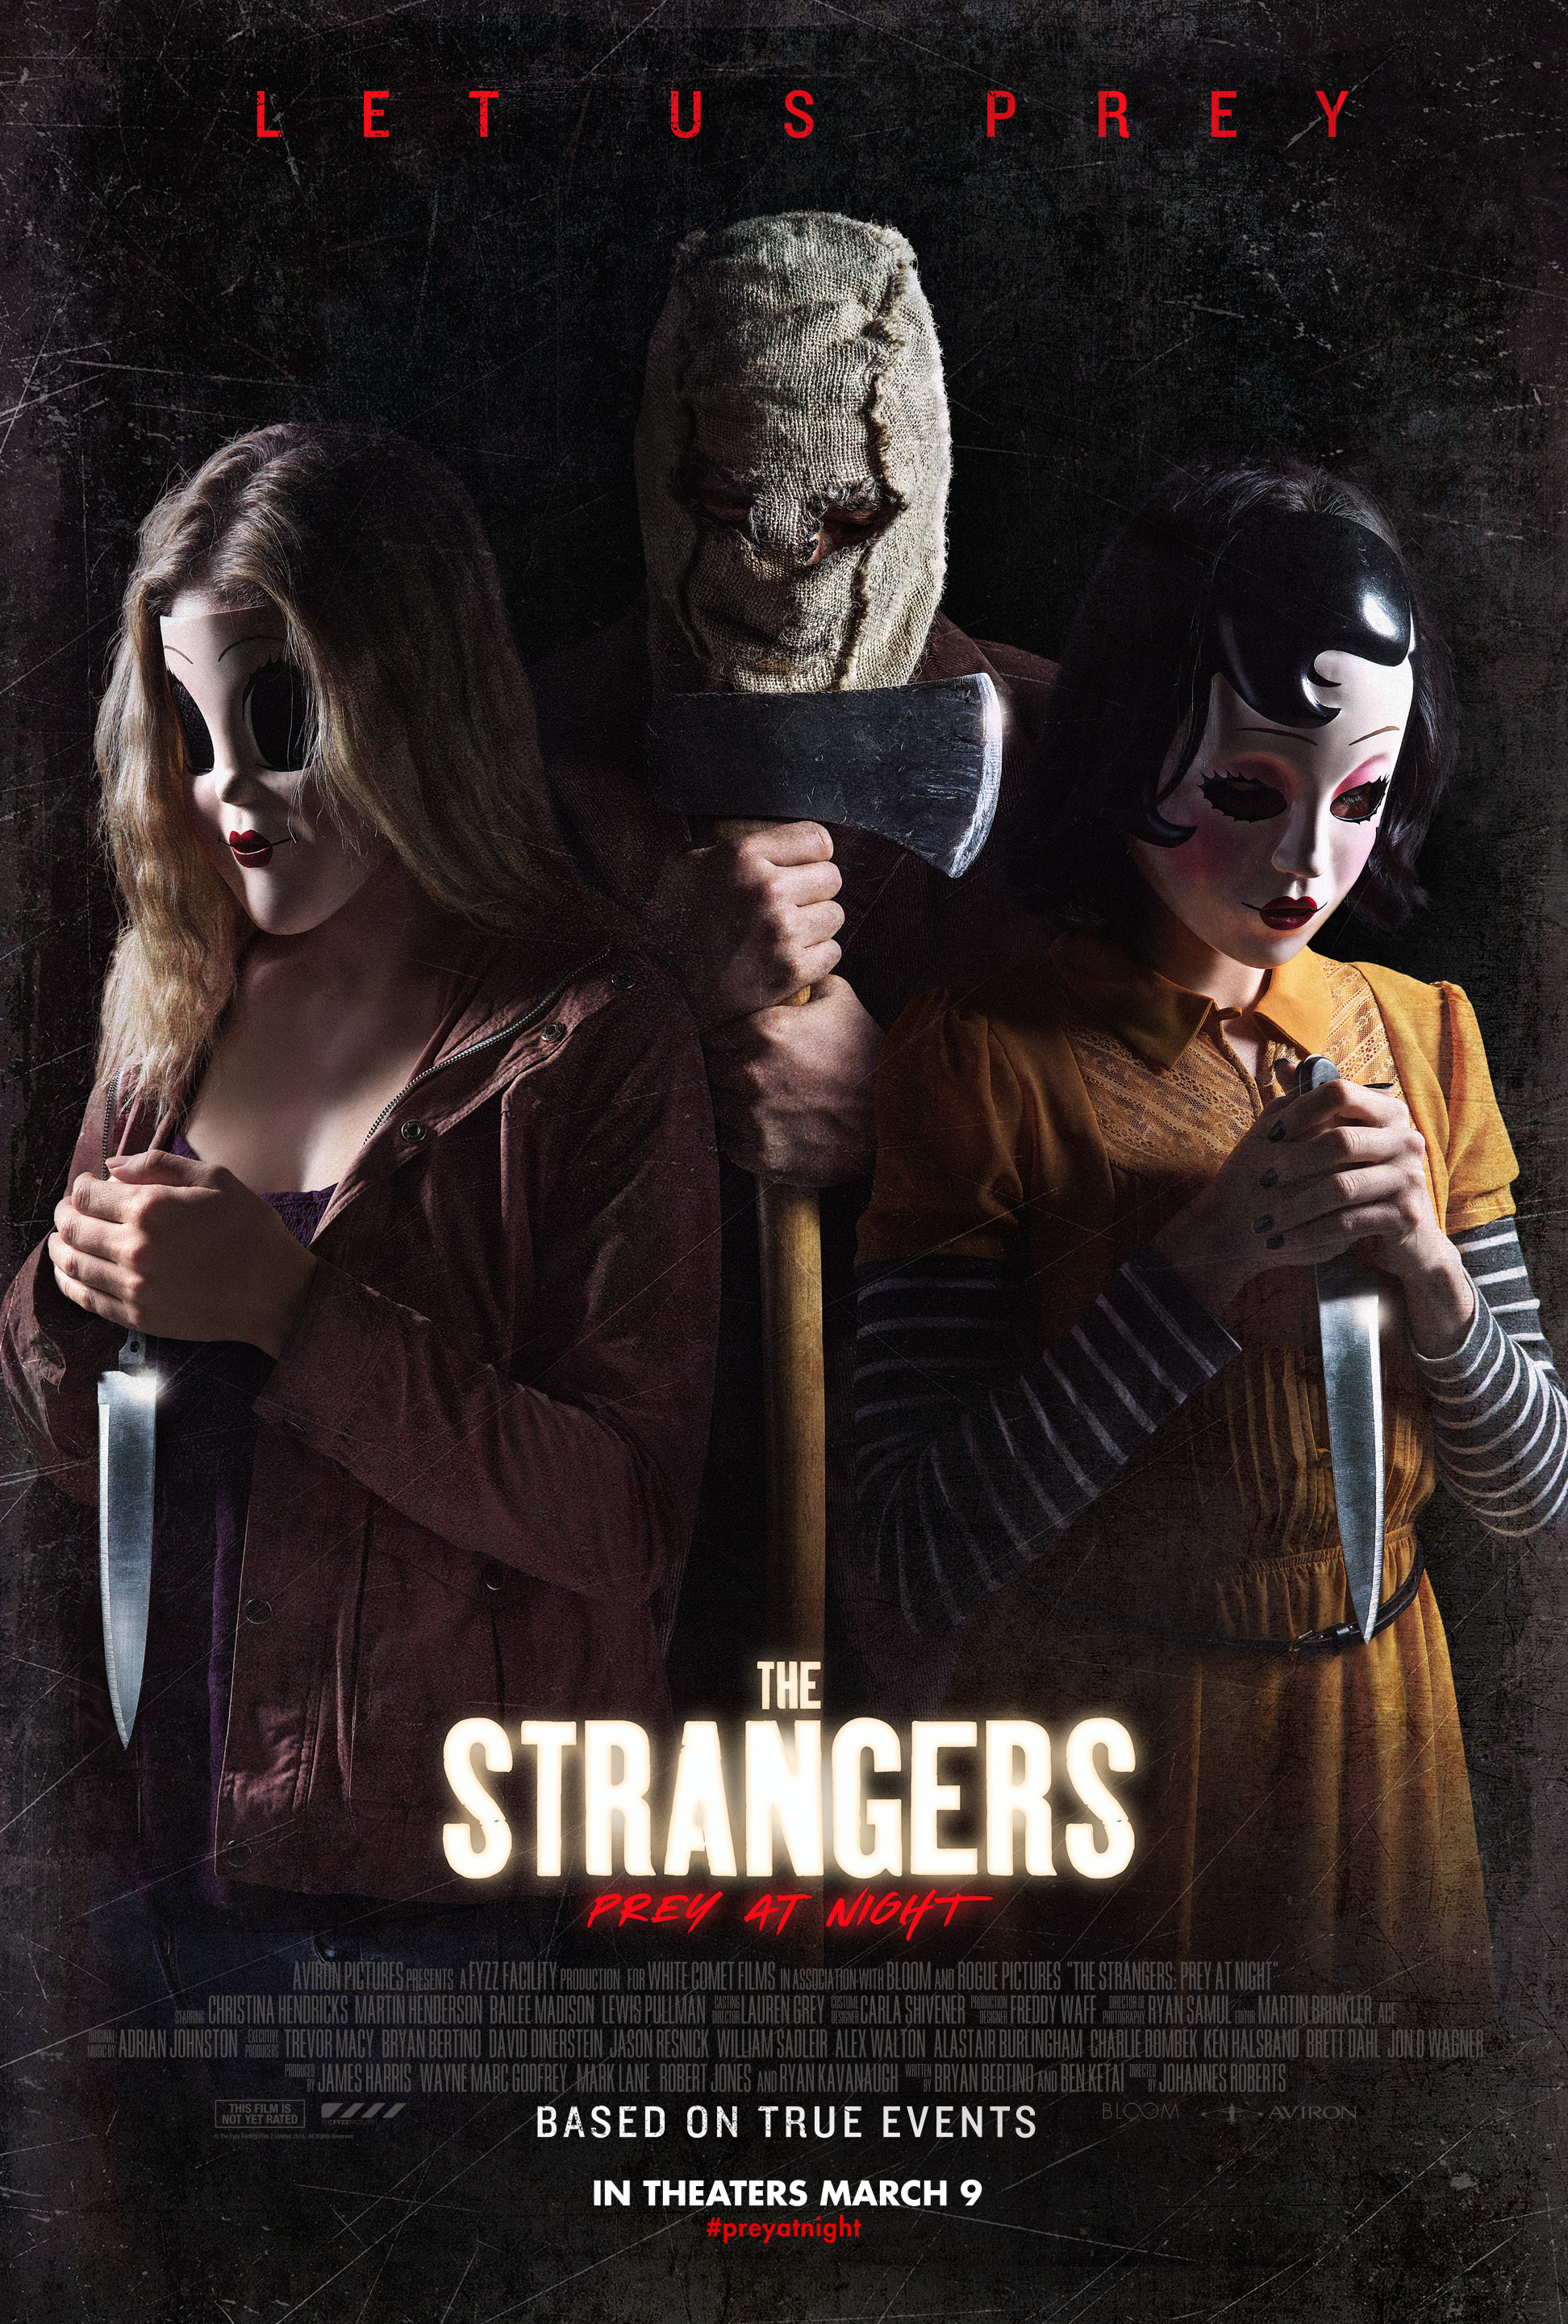 Masked Maniacs Come Knocking Again in Full 'The Strangers ...